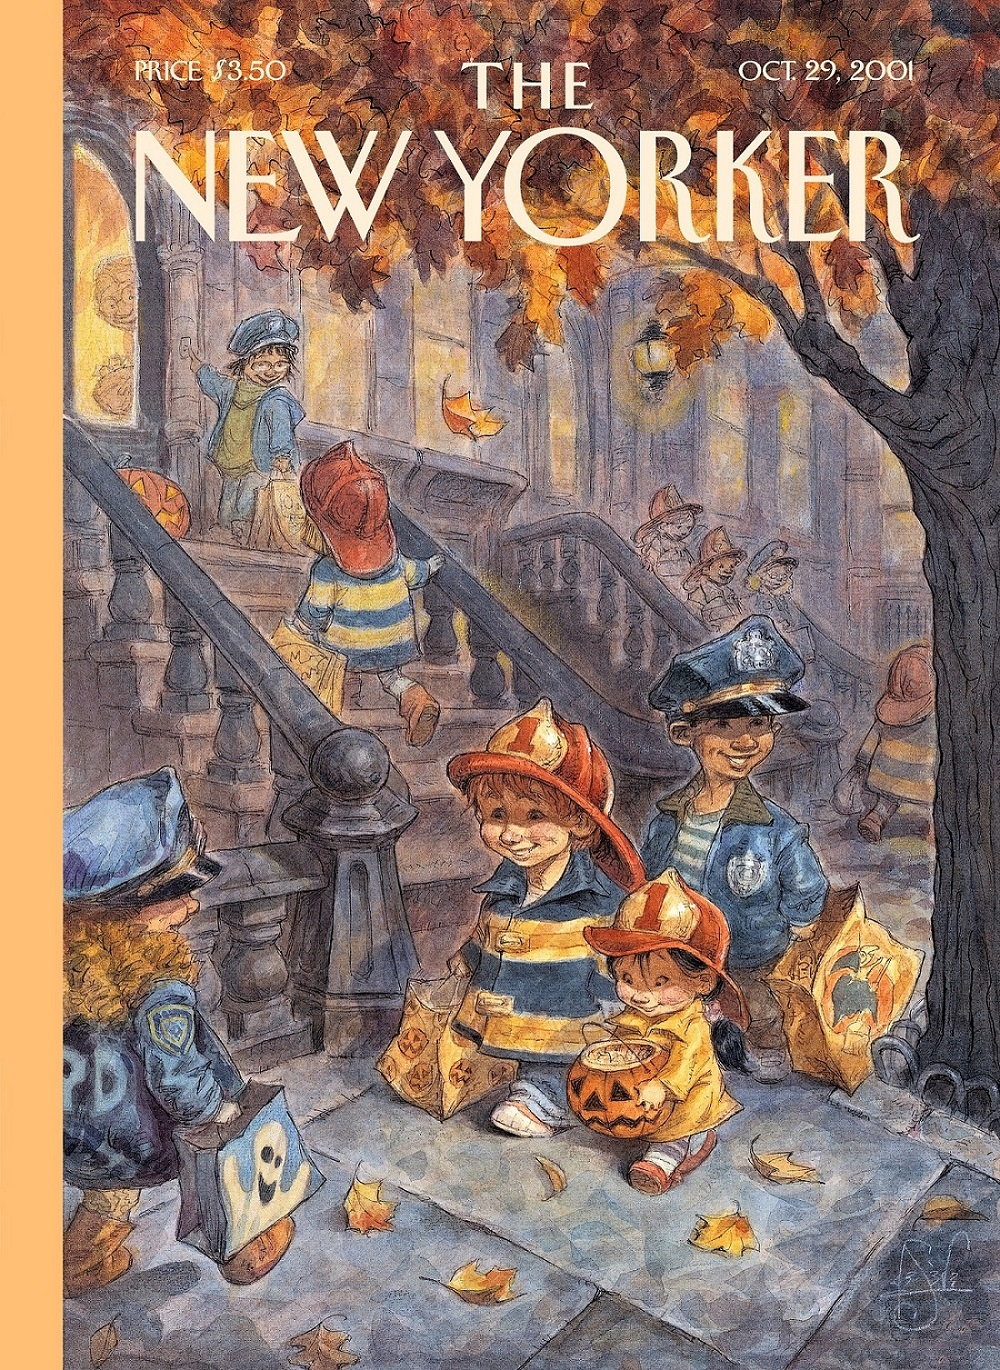 An illustrated cover of the New Yorker magazine depicts children trick-or-treating at a brownstone on an autumn day. The children are all dressed as firefighters or police officers and are carrying Halloween-themed buckets and bags.